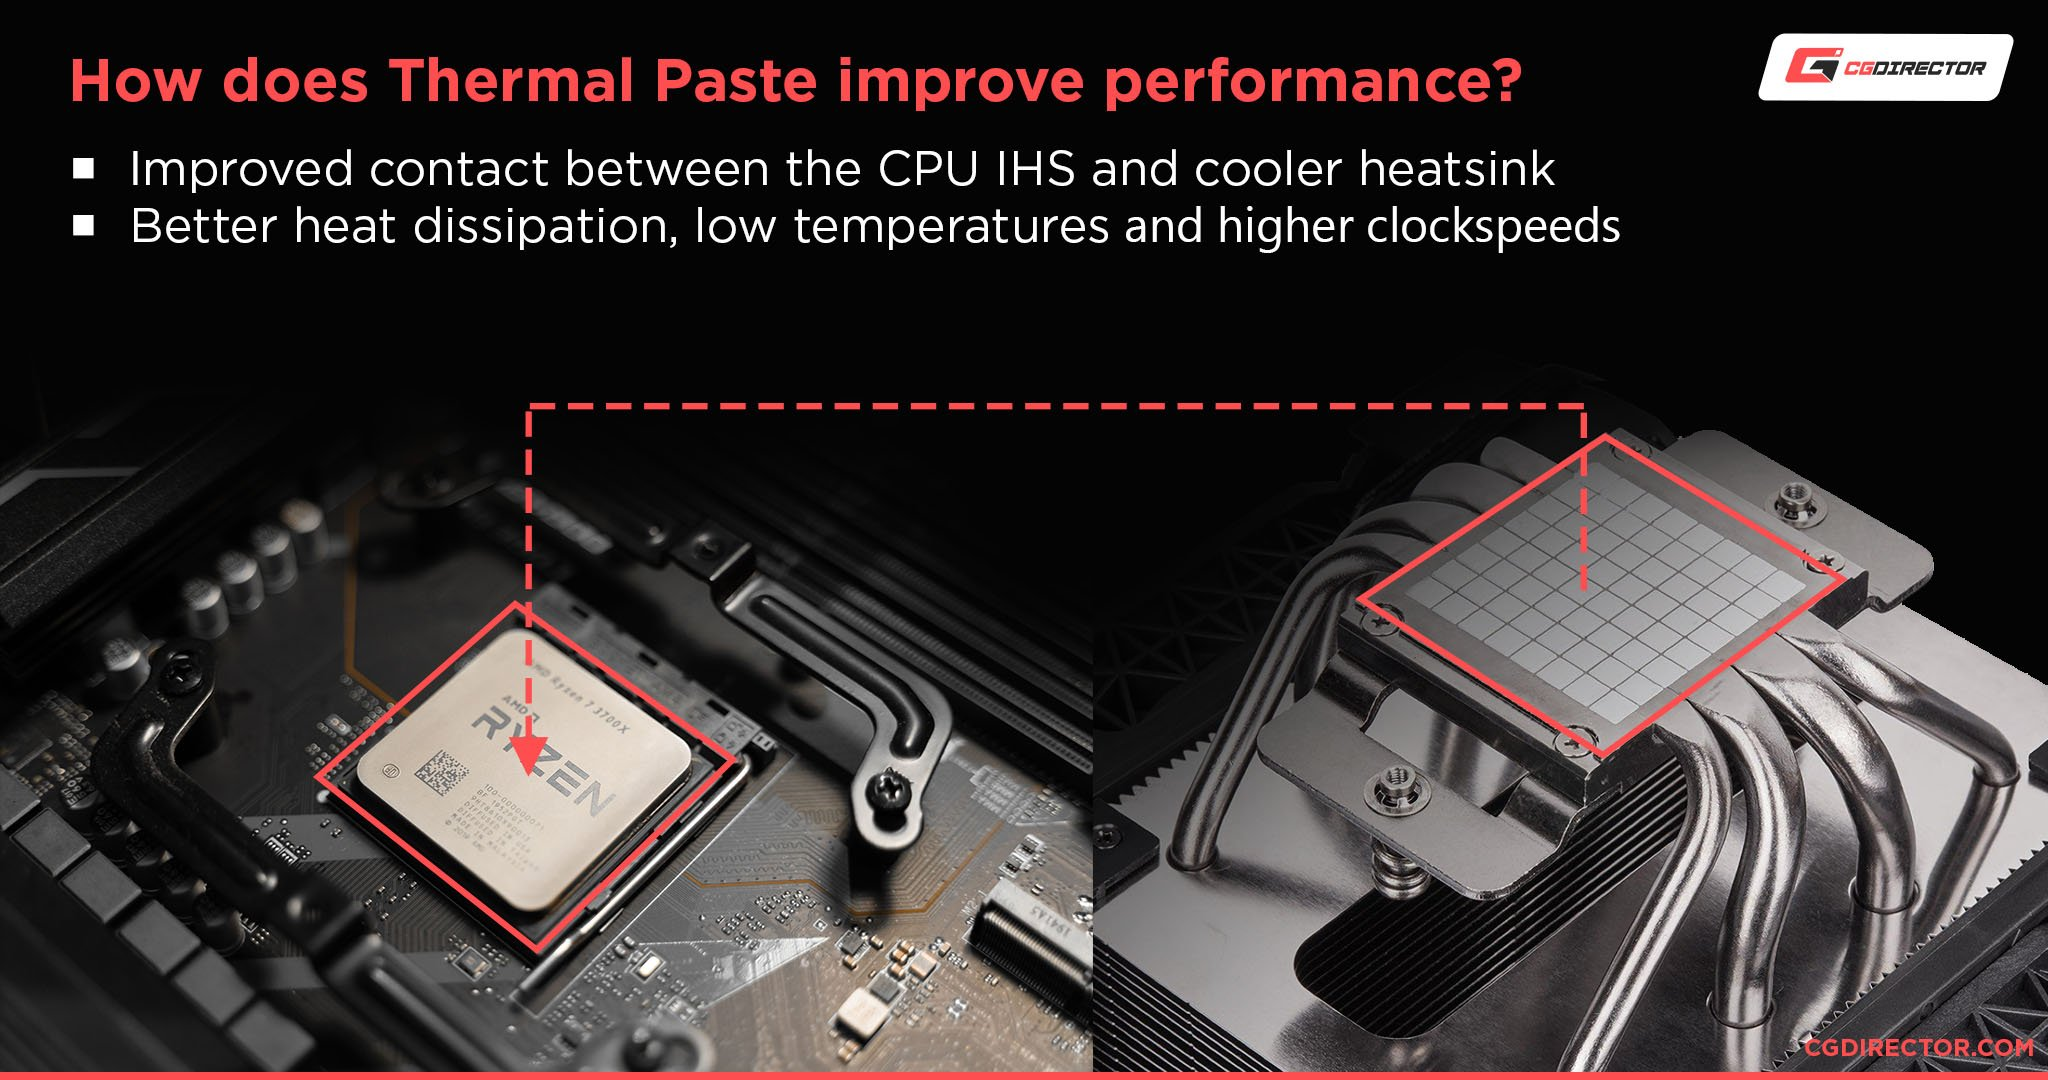 How does Thermal Paste improve performance